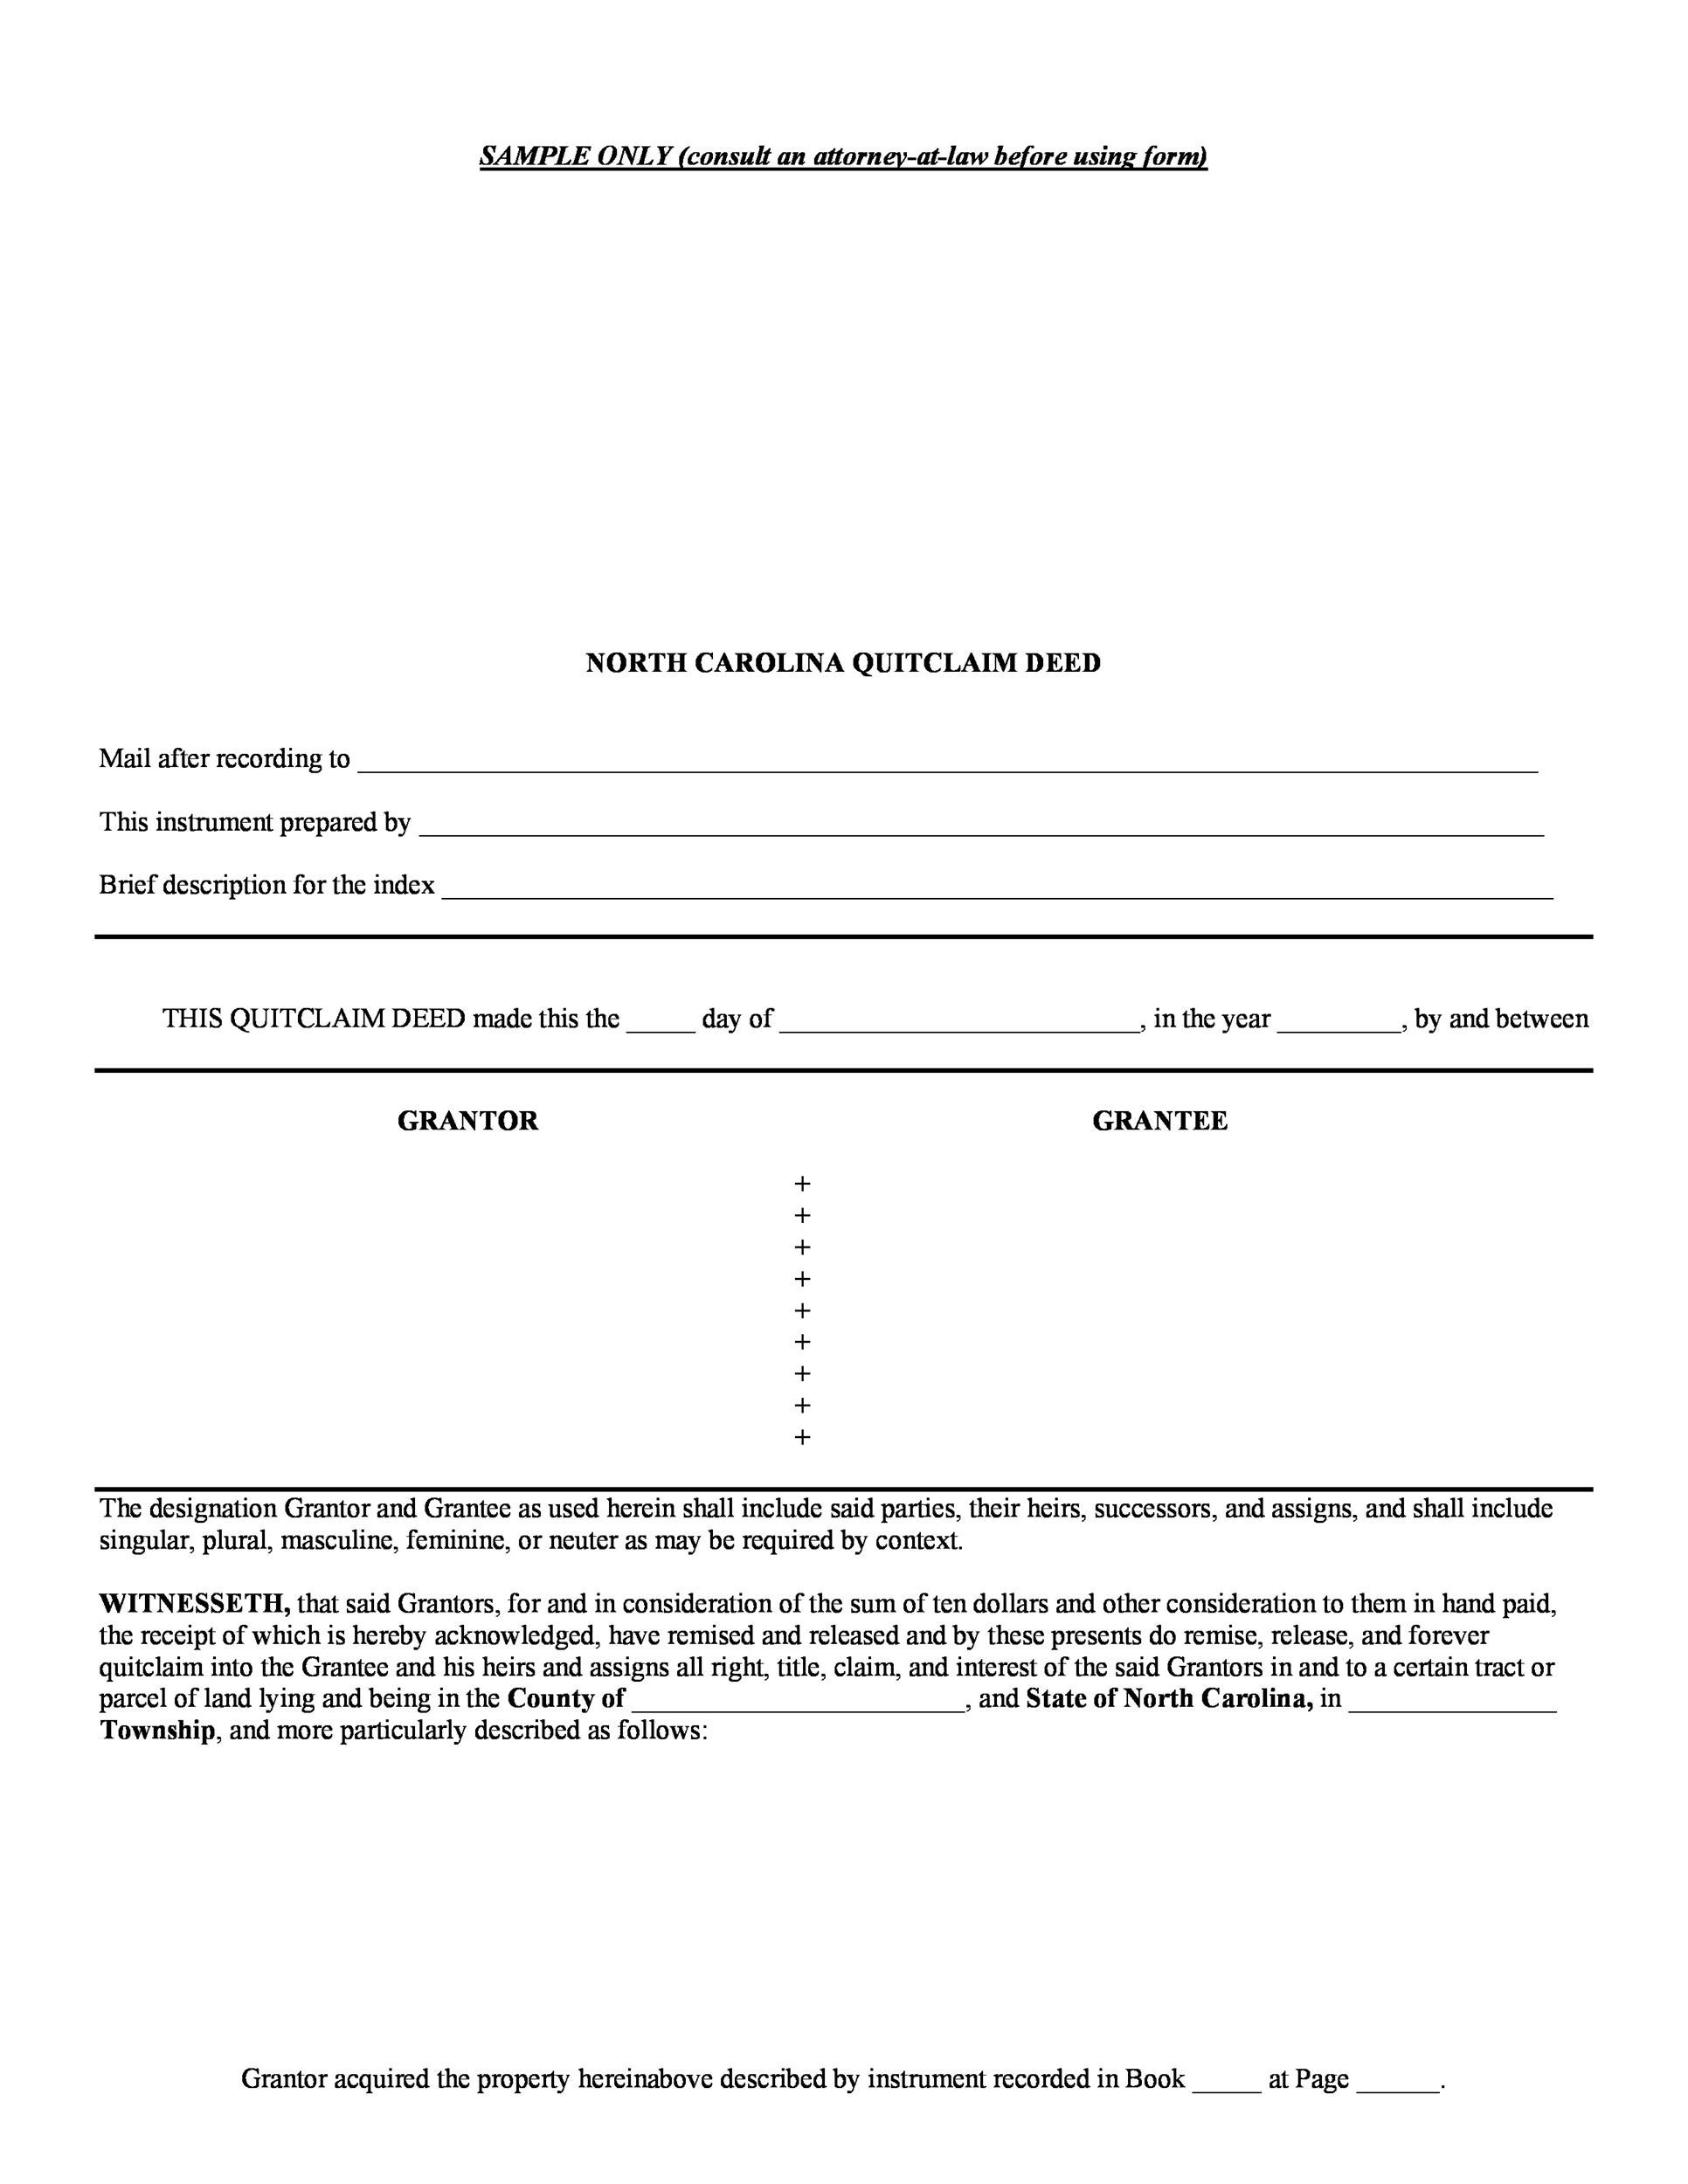 46 Free Quit Claim Deed Forms Templates Template Lab – Sample Quitclaim Deed Form